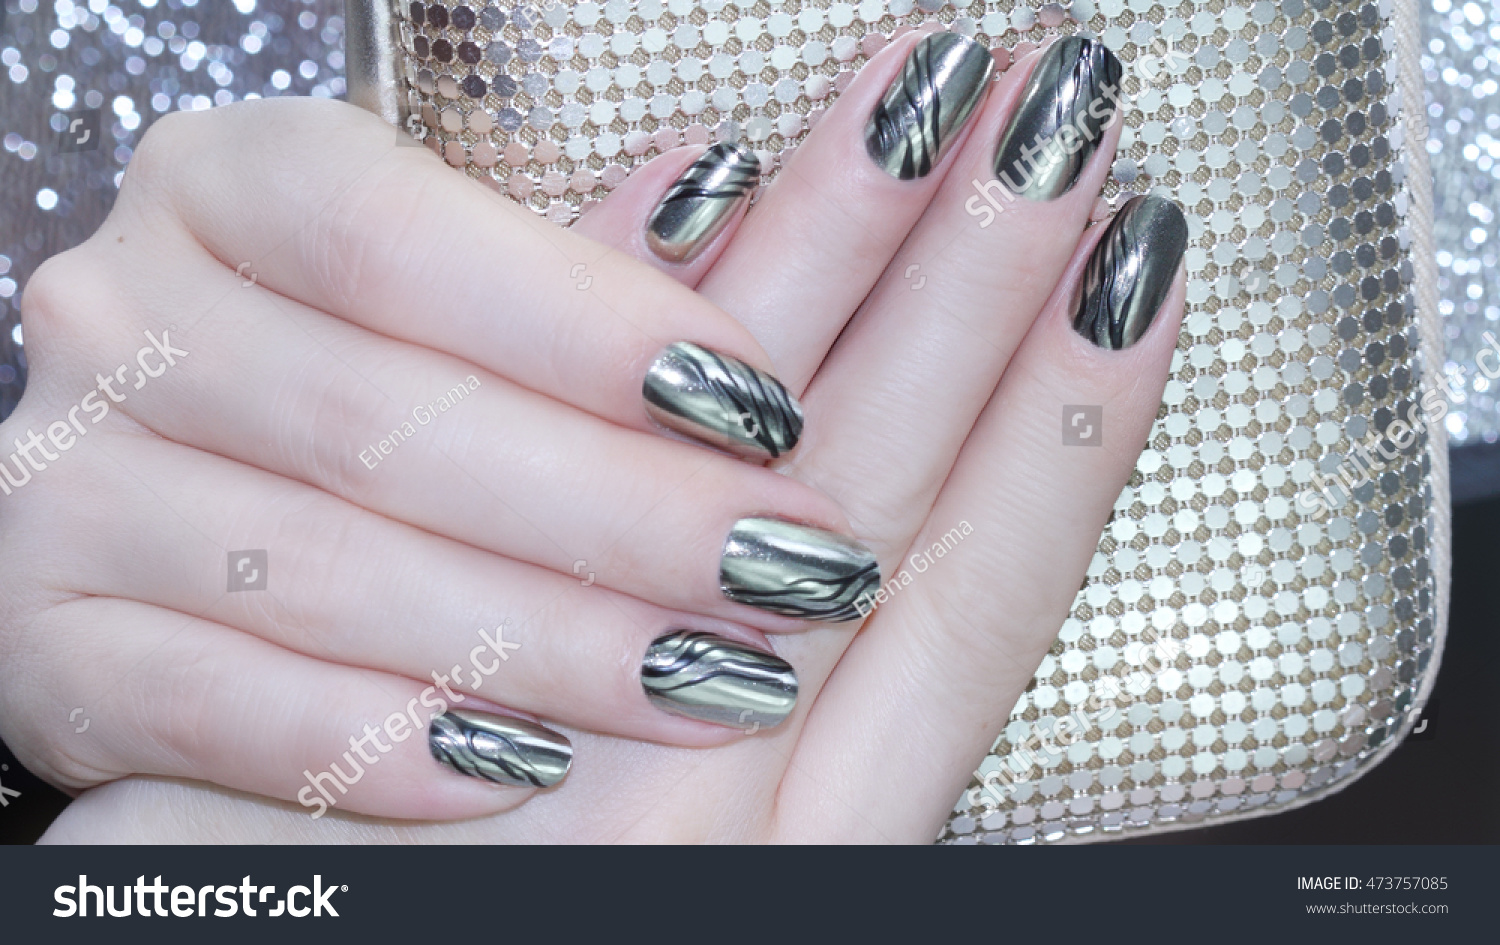 Metallic Nail Design Manicure Nail Paint Stock Photo (Royalty Free ...